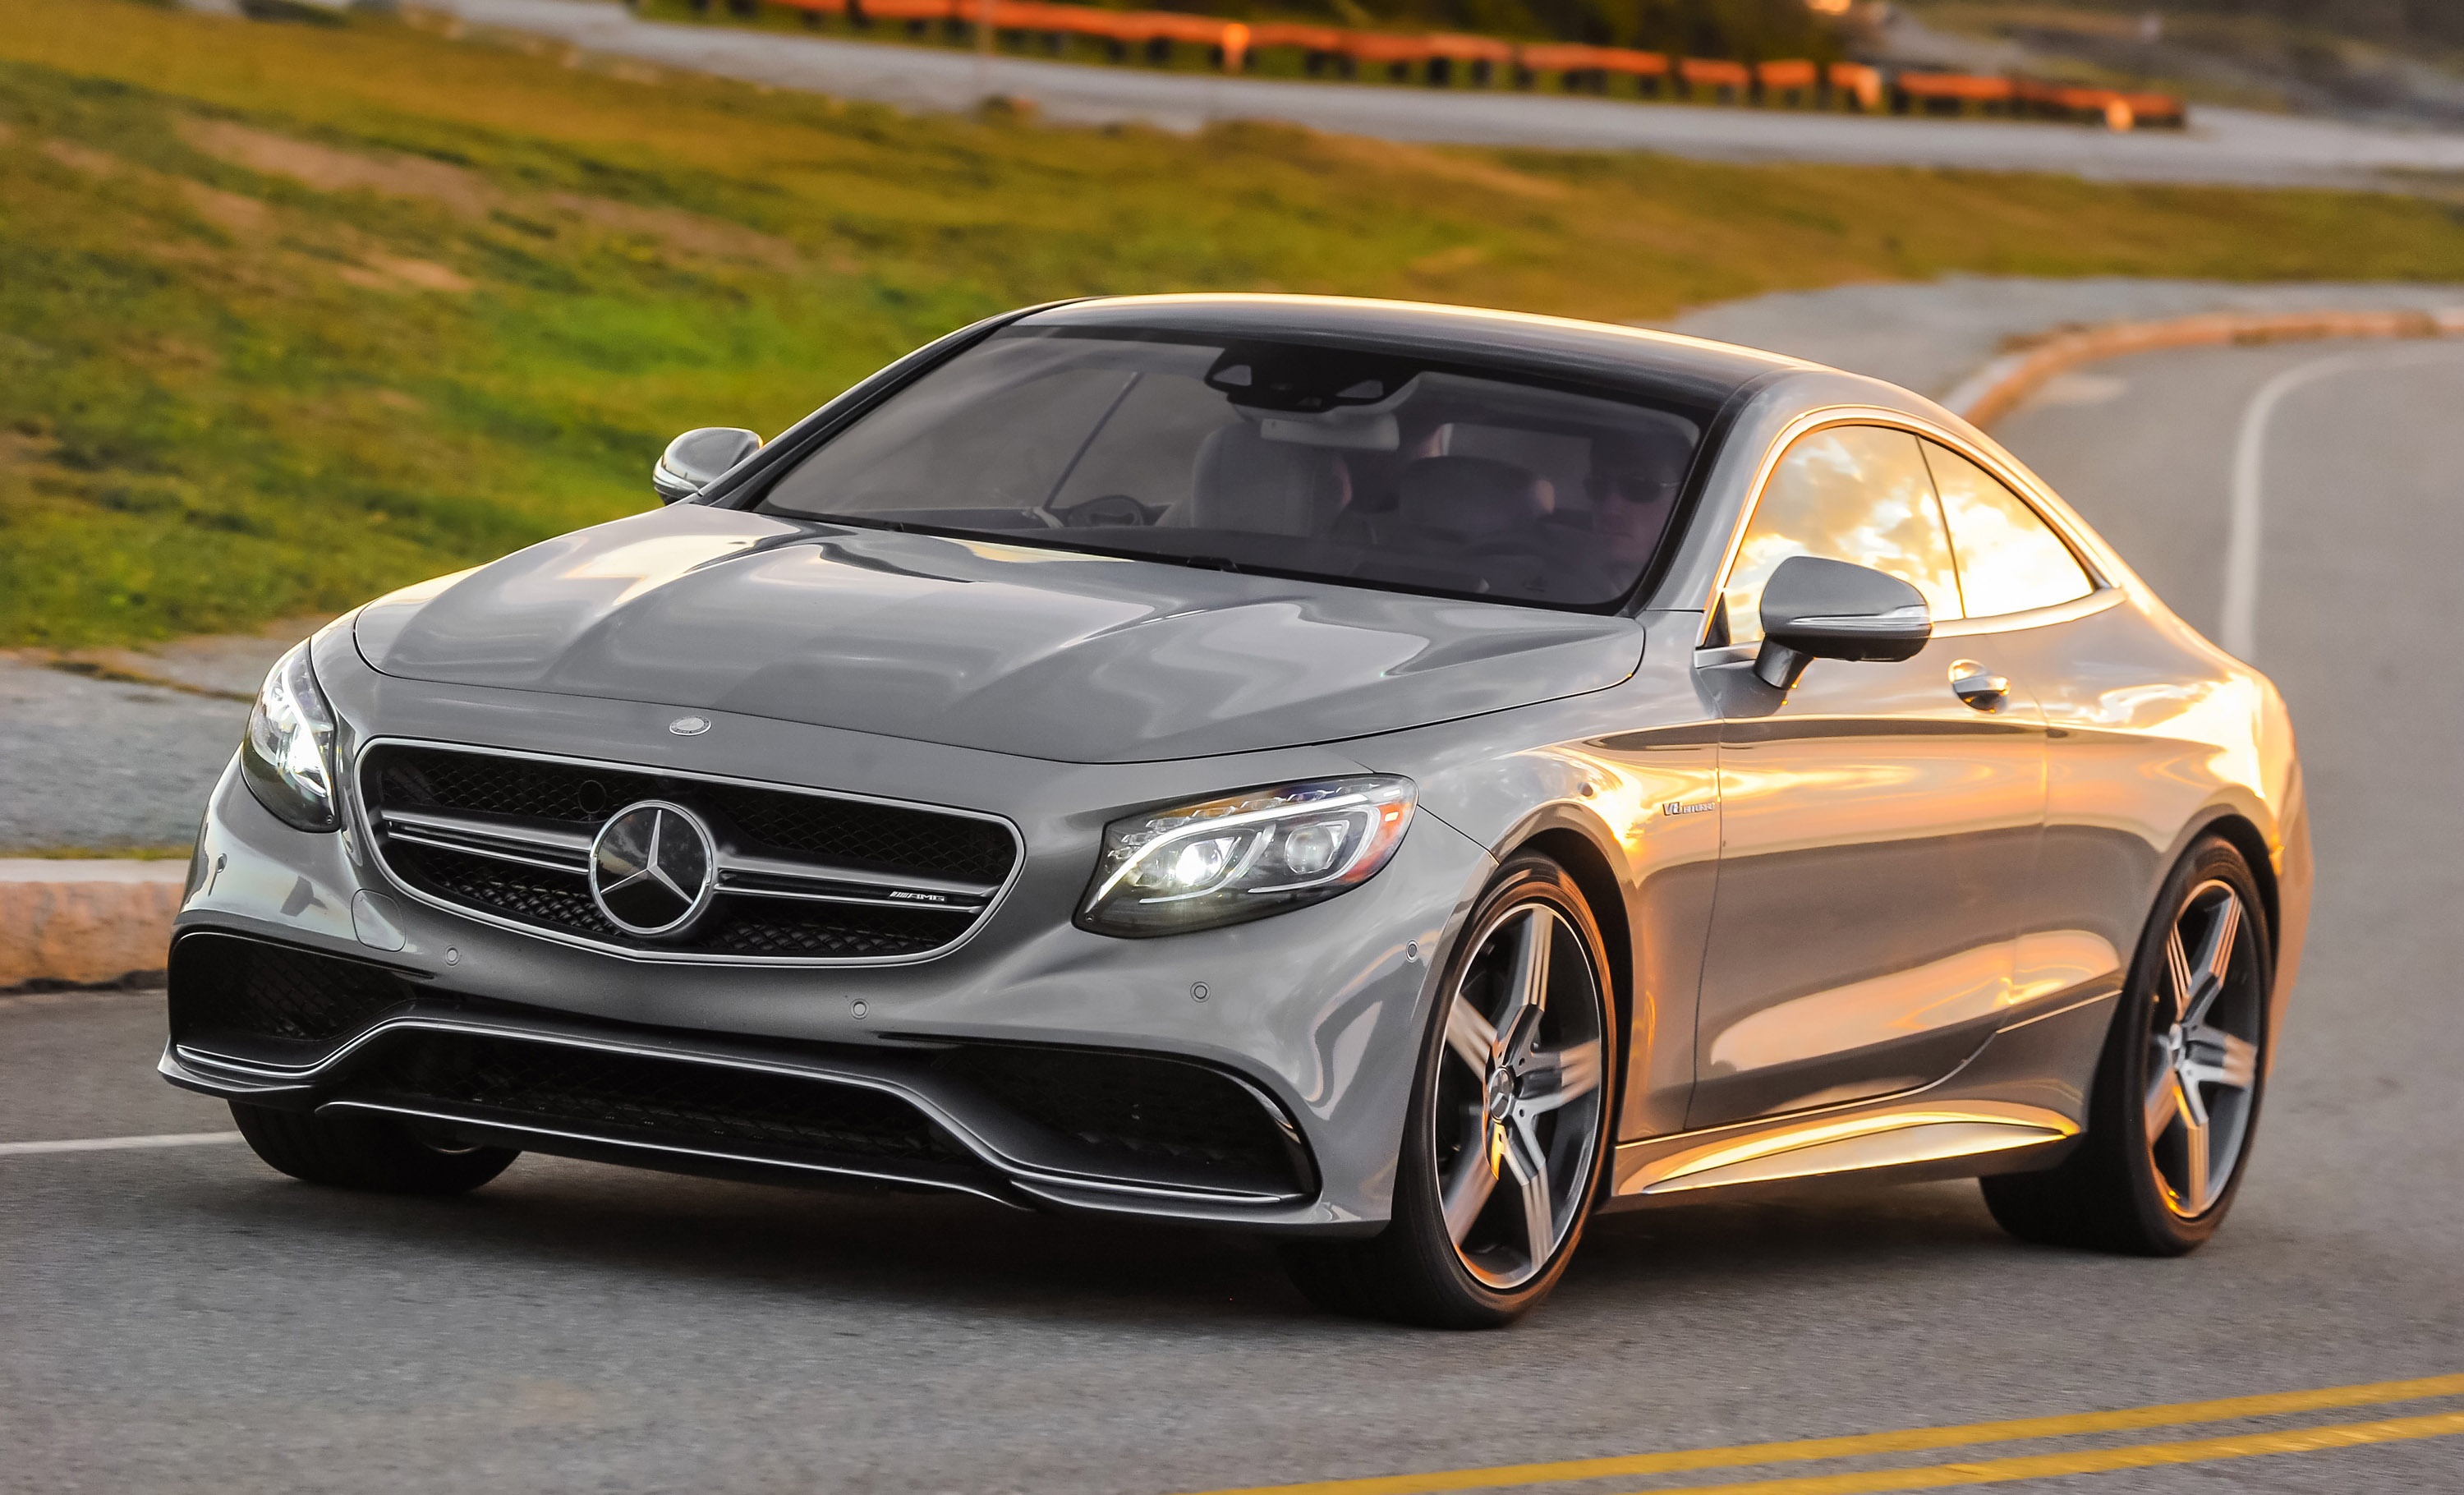 Meet the new 2015 mercedes benz s63 amg 4matic coupe for 2015 mercedes benz ml